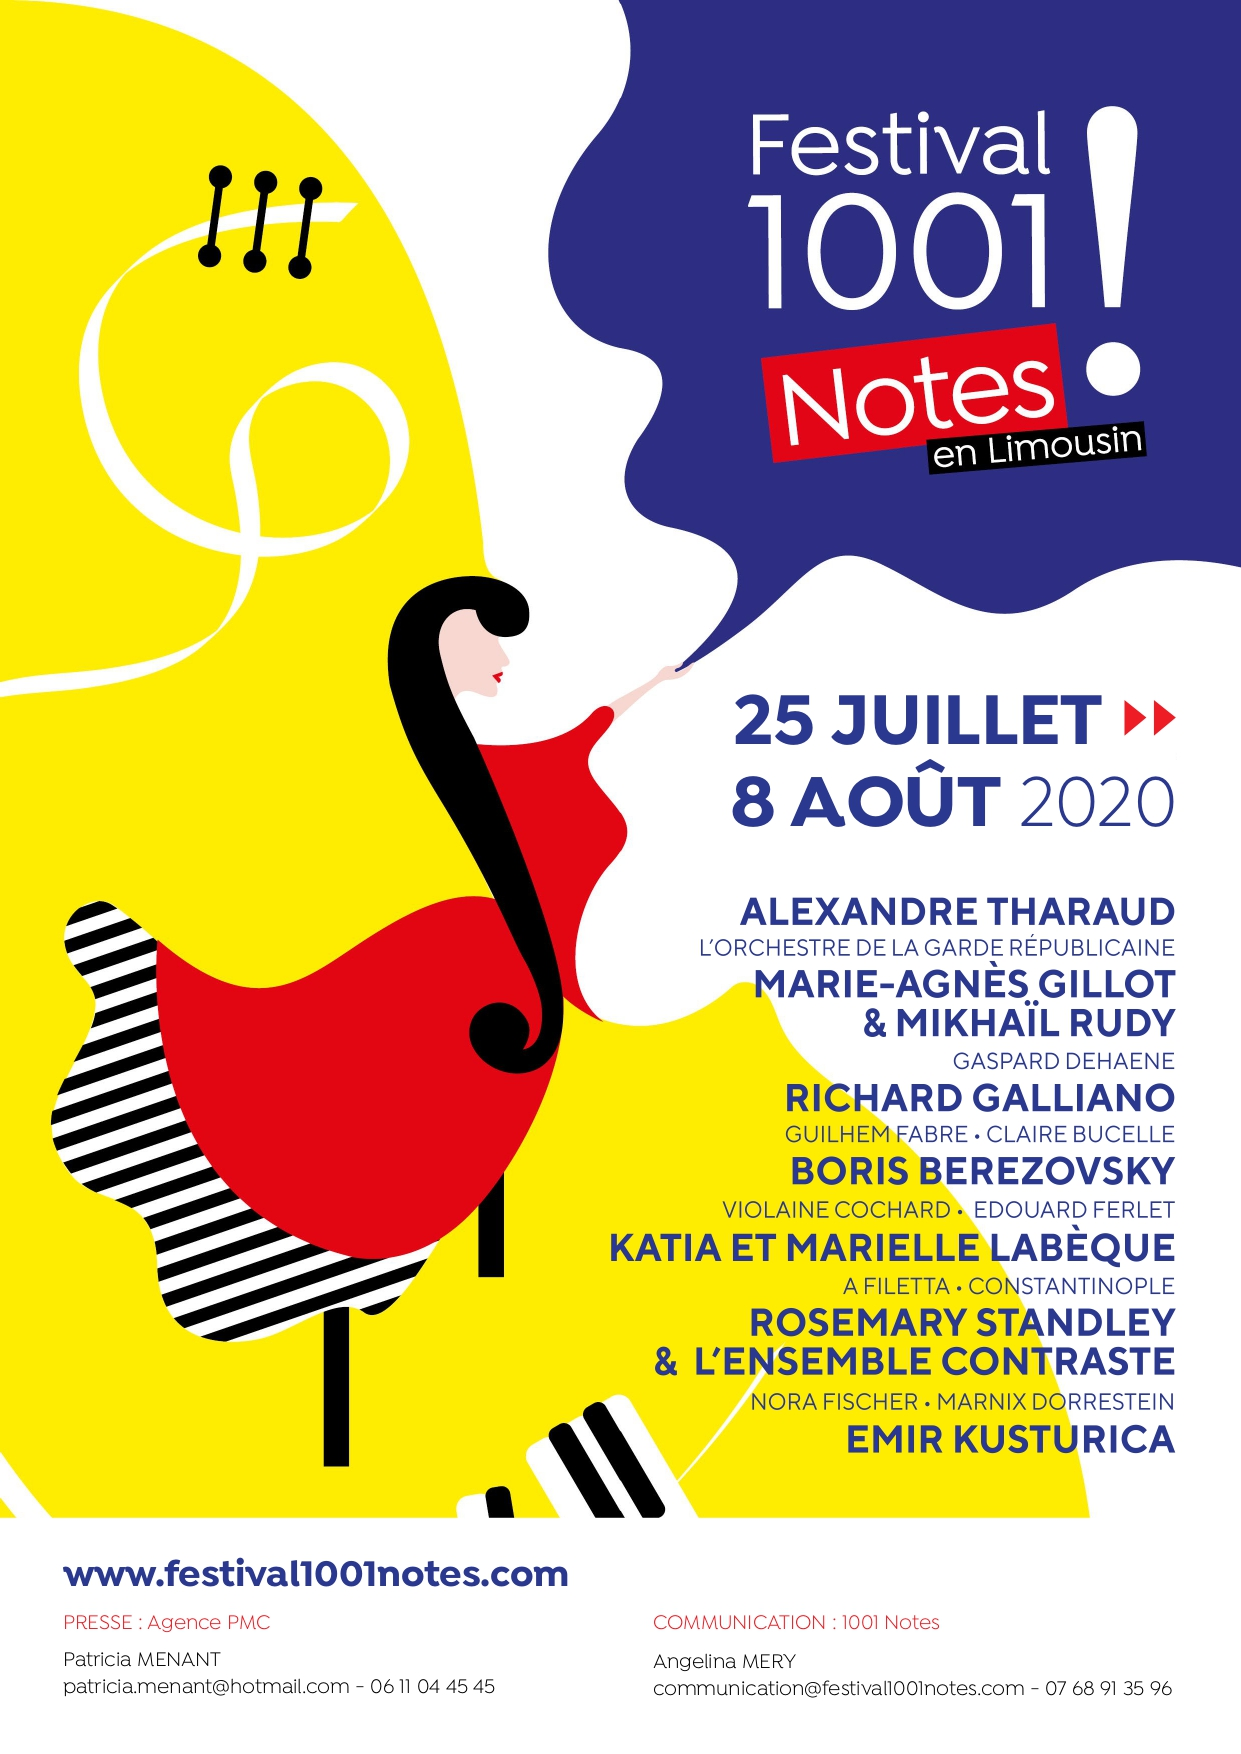 Limoges : Festival 1001 Notes en Limousin / ANNULE